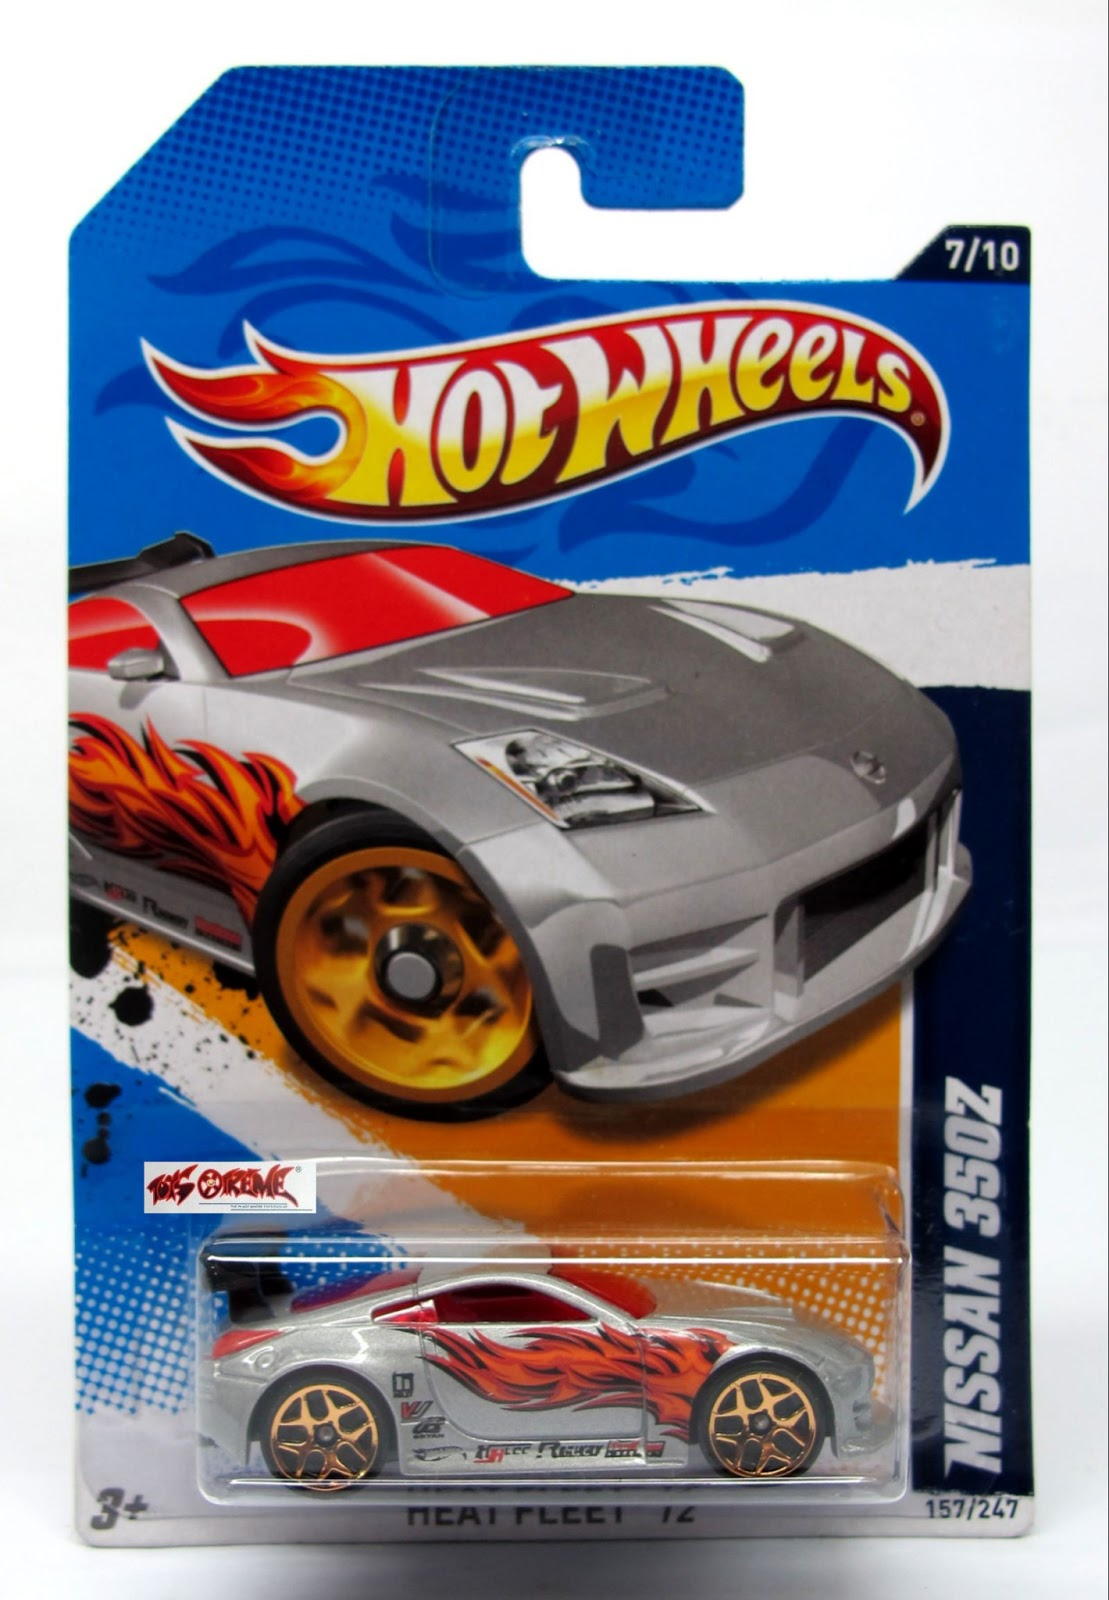 rare hot wheels cars 2013 of this car model found by - Rare Hot Wheels Cars 2013